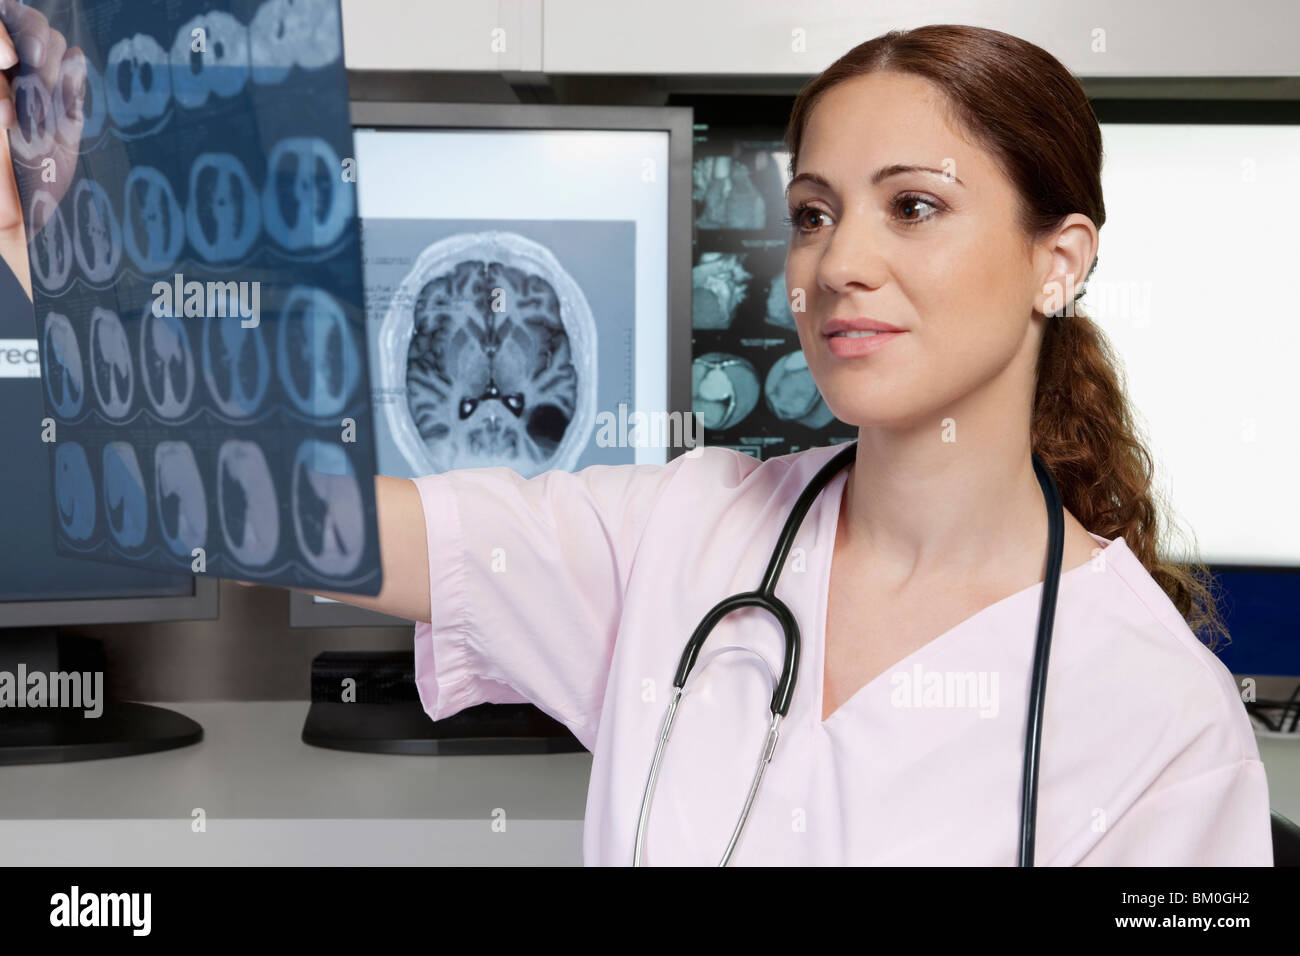 Femme médecin l'examen d'une x-ray report Photo Stock